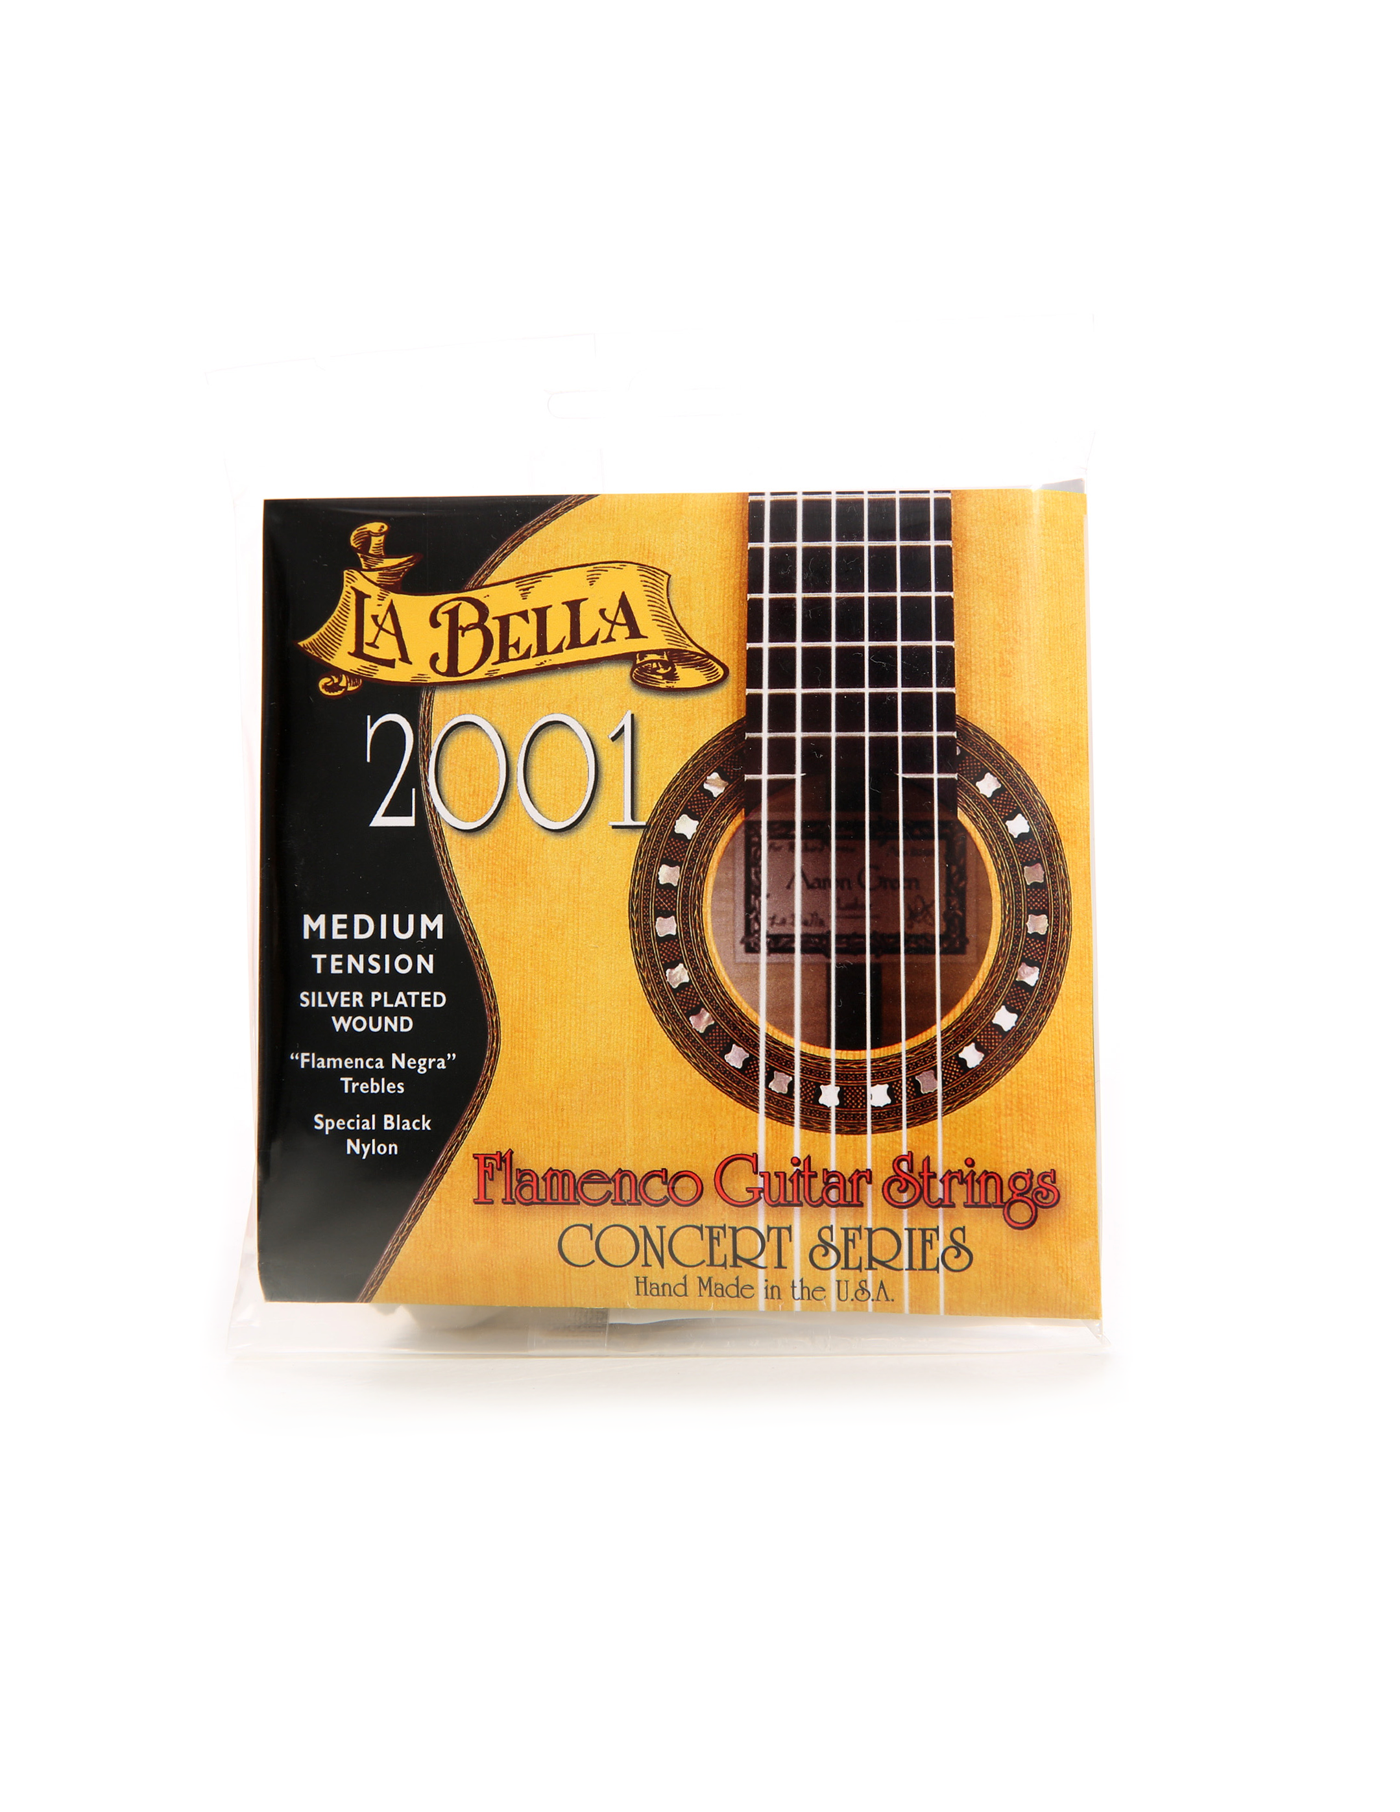 La Bella guitar flamenco strings 2001 normal tension